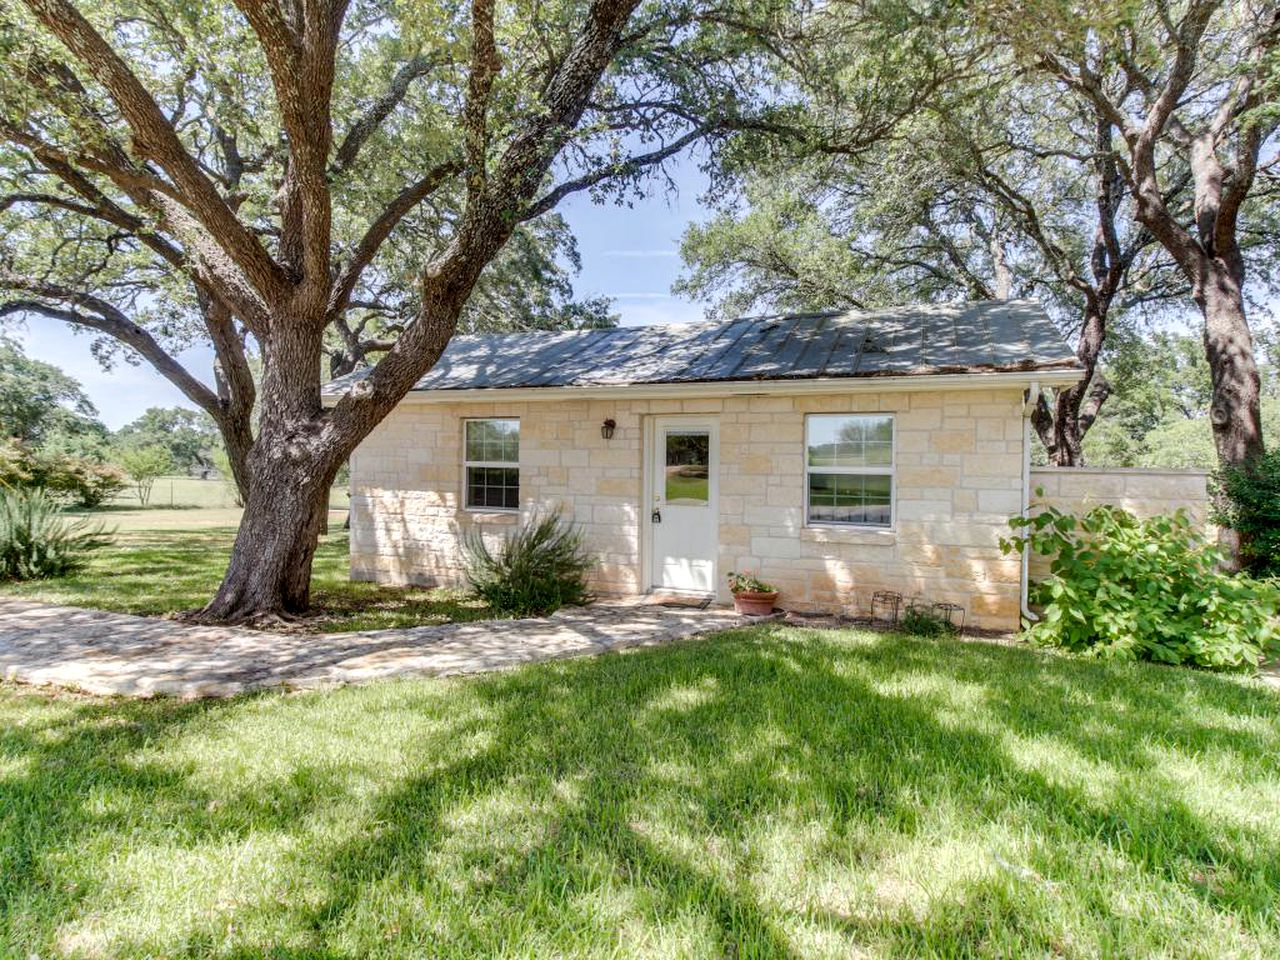 Cottages (Fredericksburg, Texas, United States)